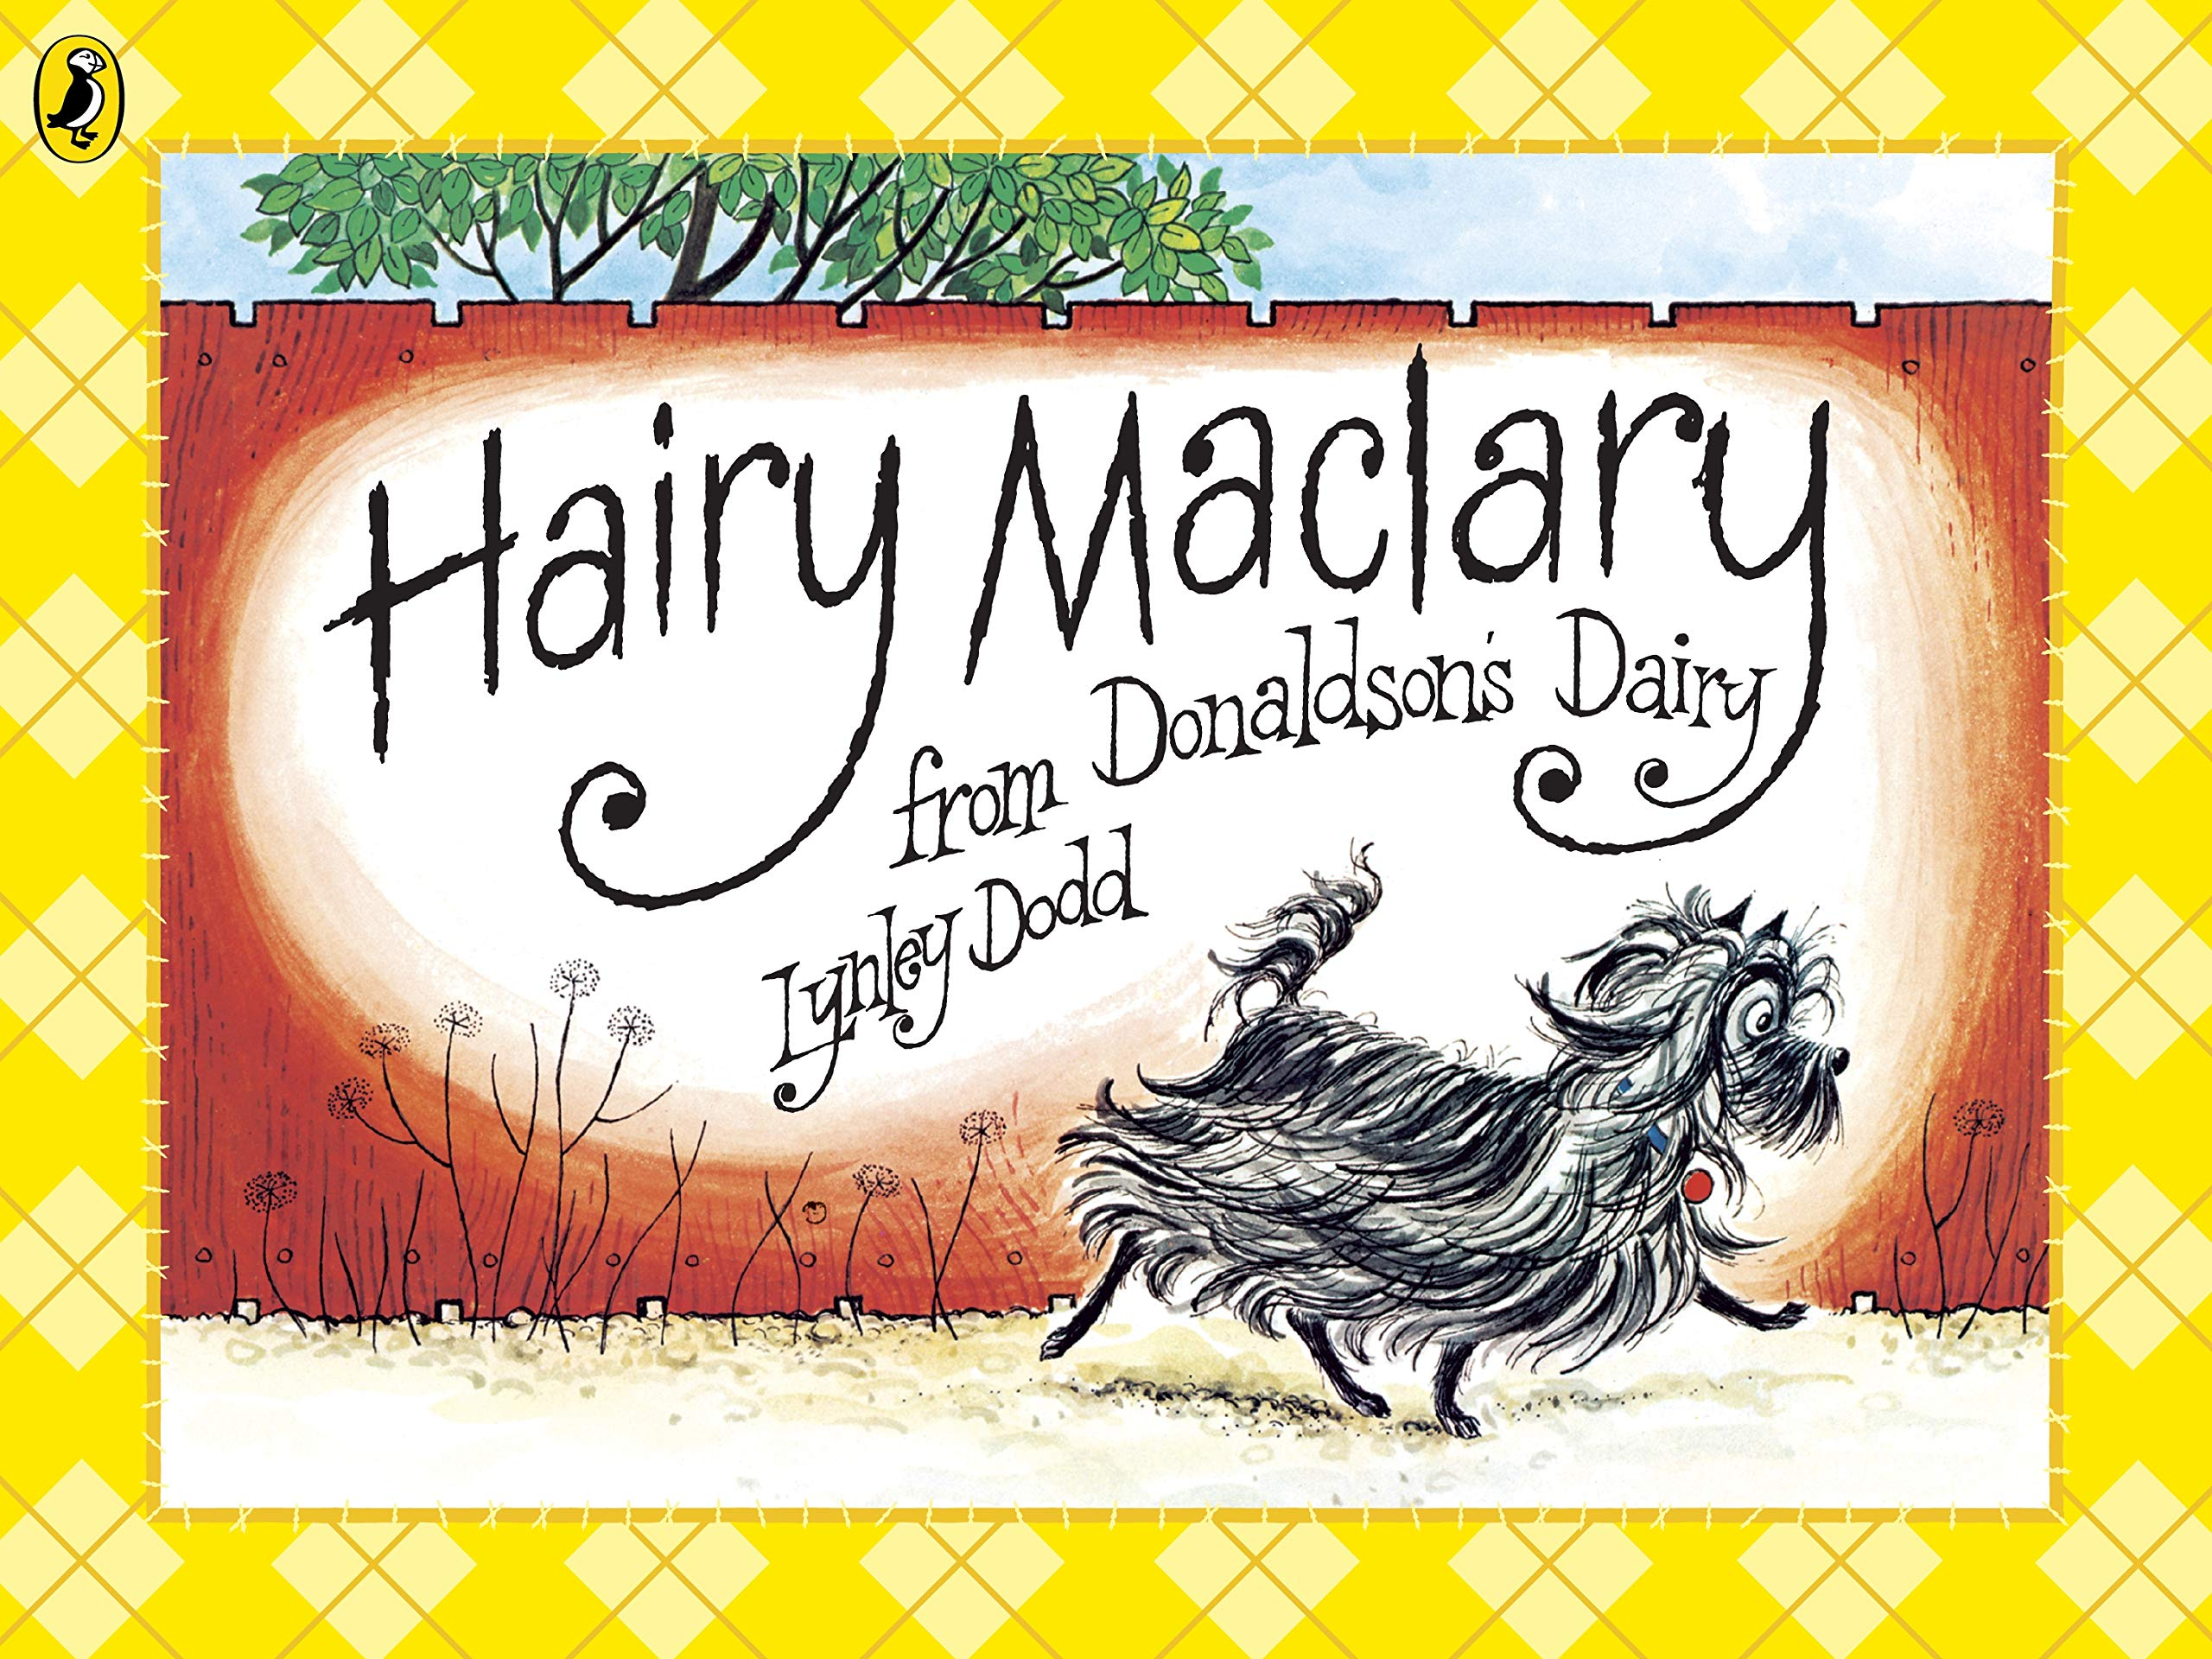 Hairy Maclary from Donaldson's Dairy Hairy Maclary and Friends ...